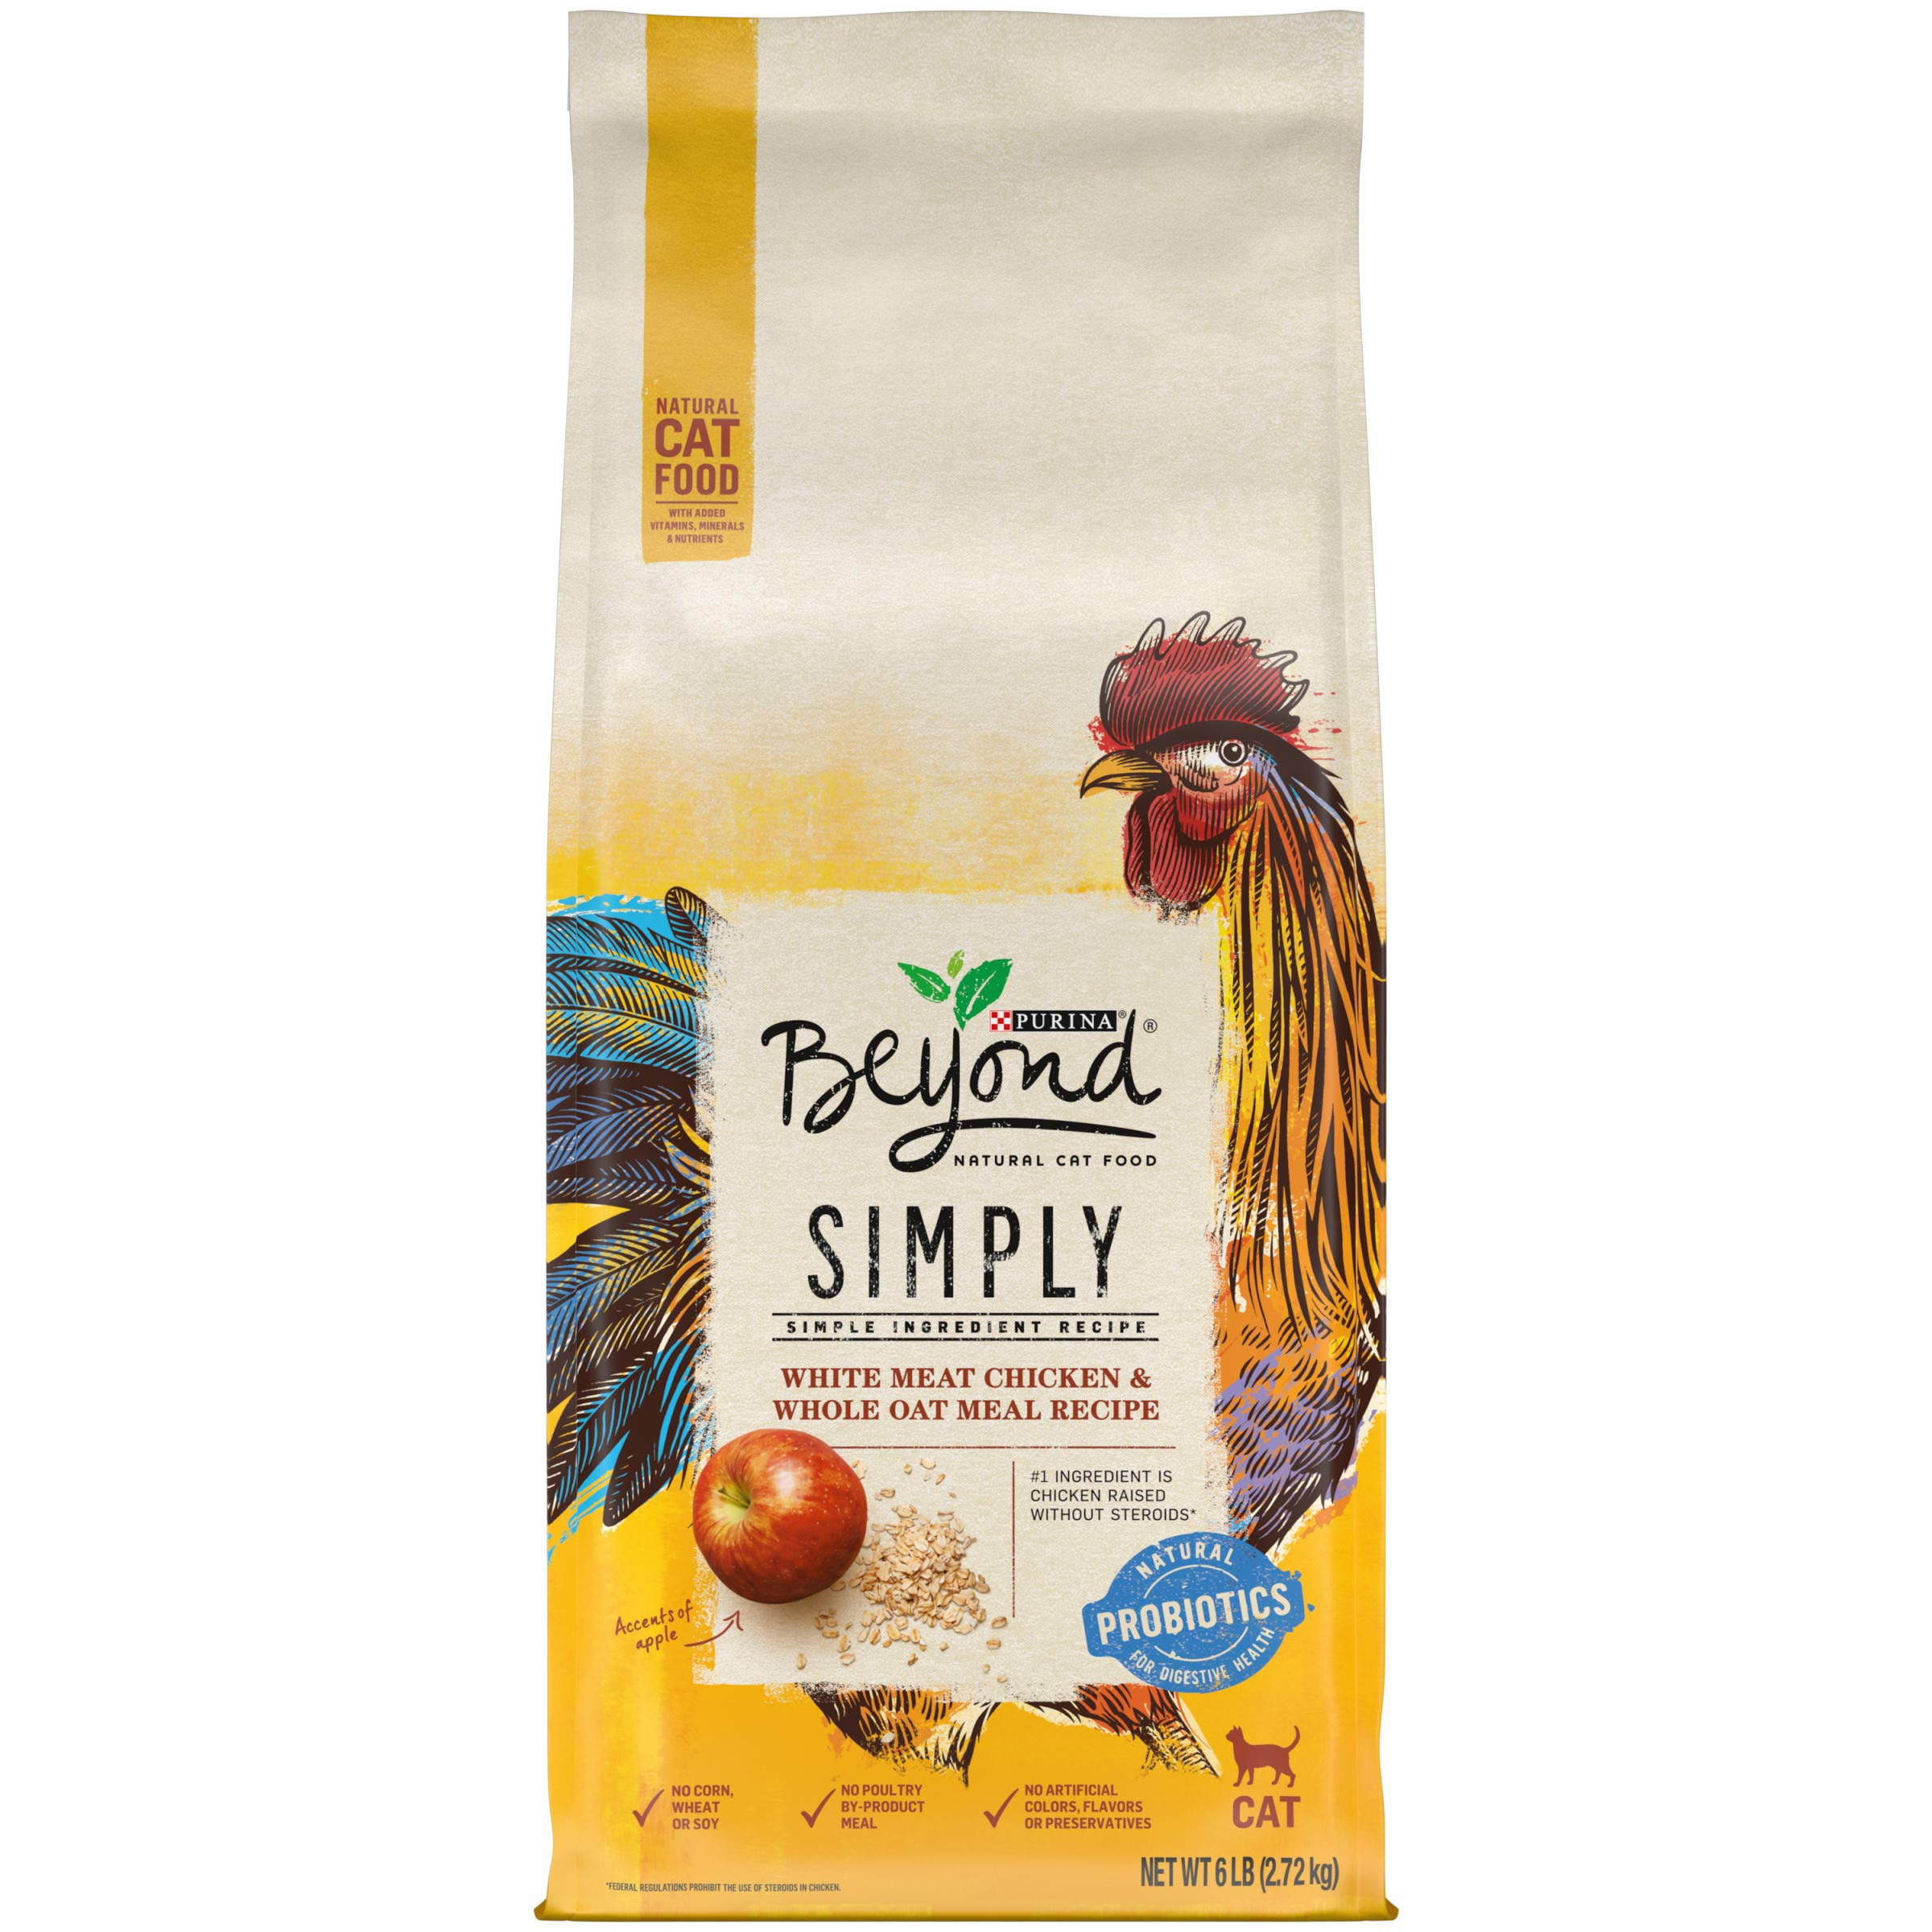 Purina Beyond Natural Limited Ingredient Dry Cat Food, Simply White Meat Chicken & Whole Oat Meal Recipe - 6 lb. Bag